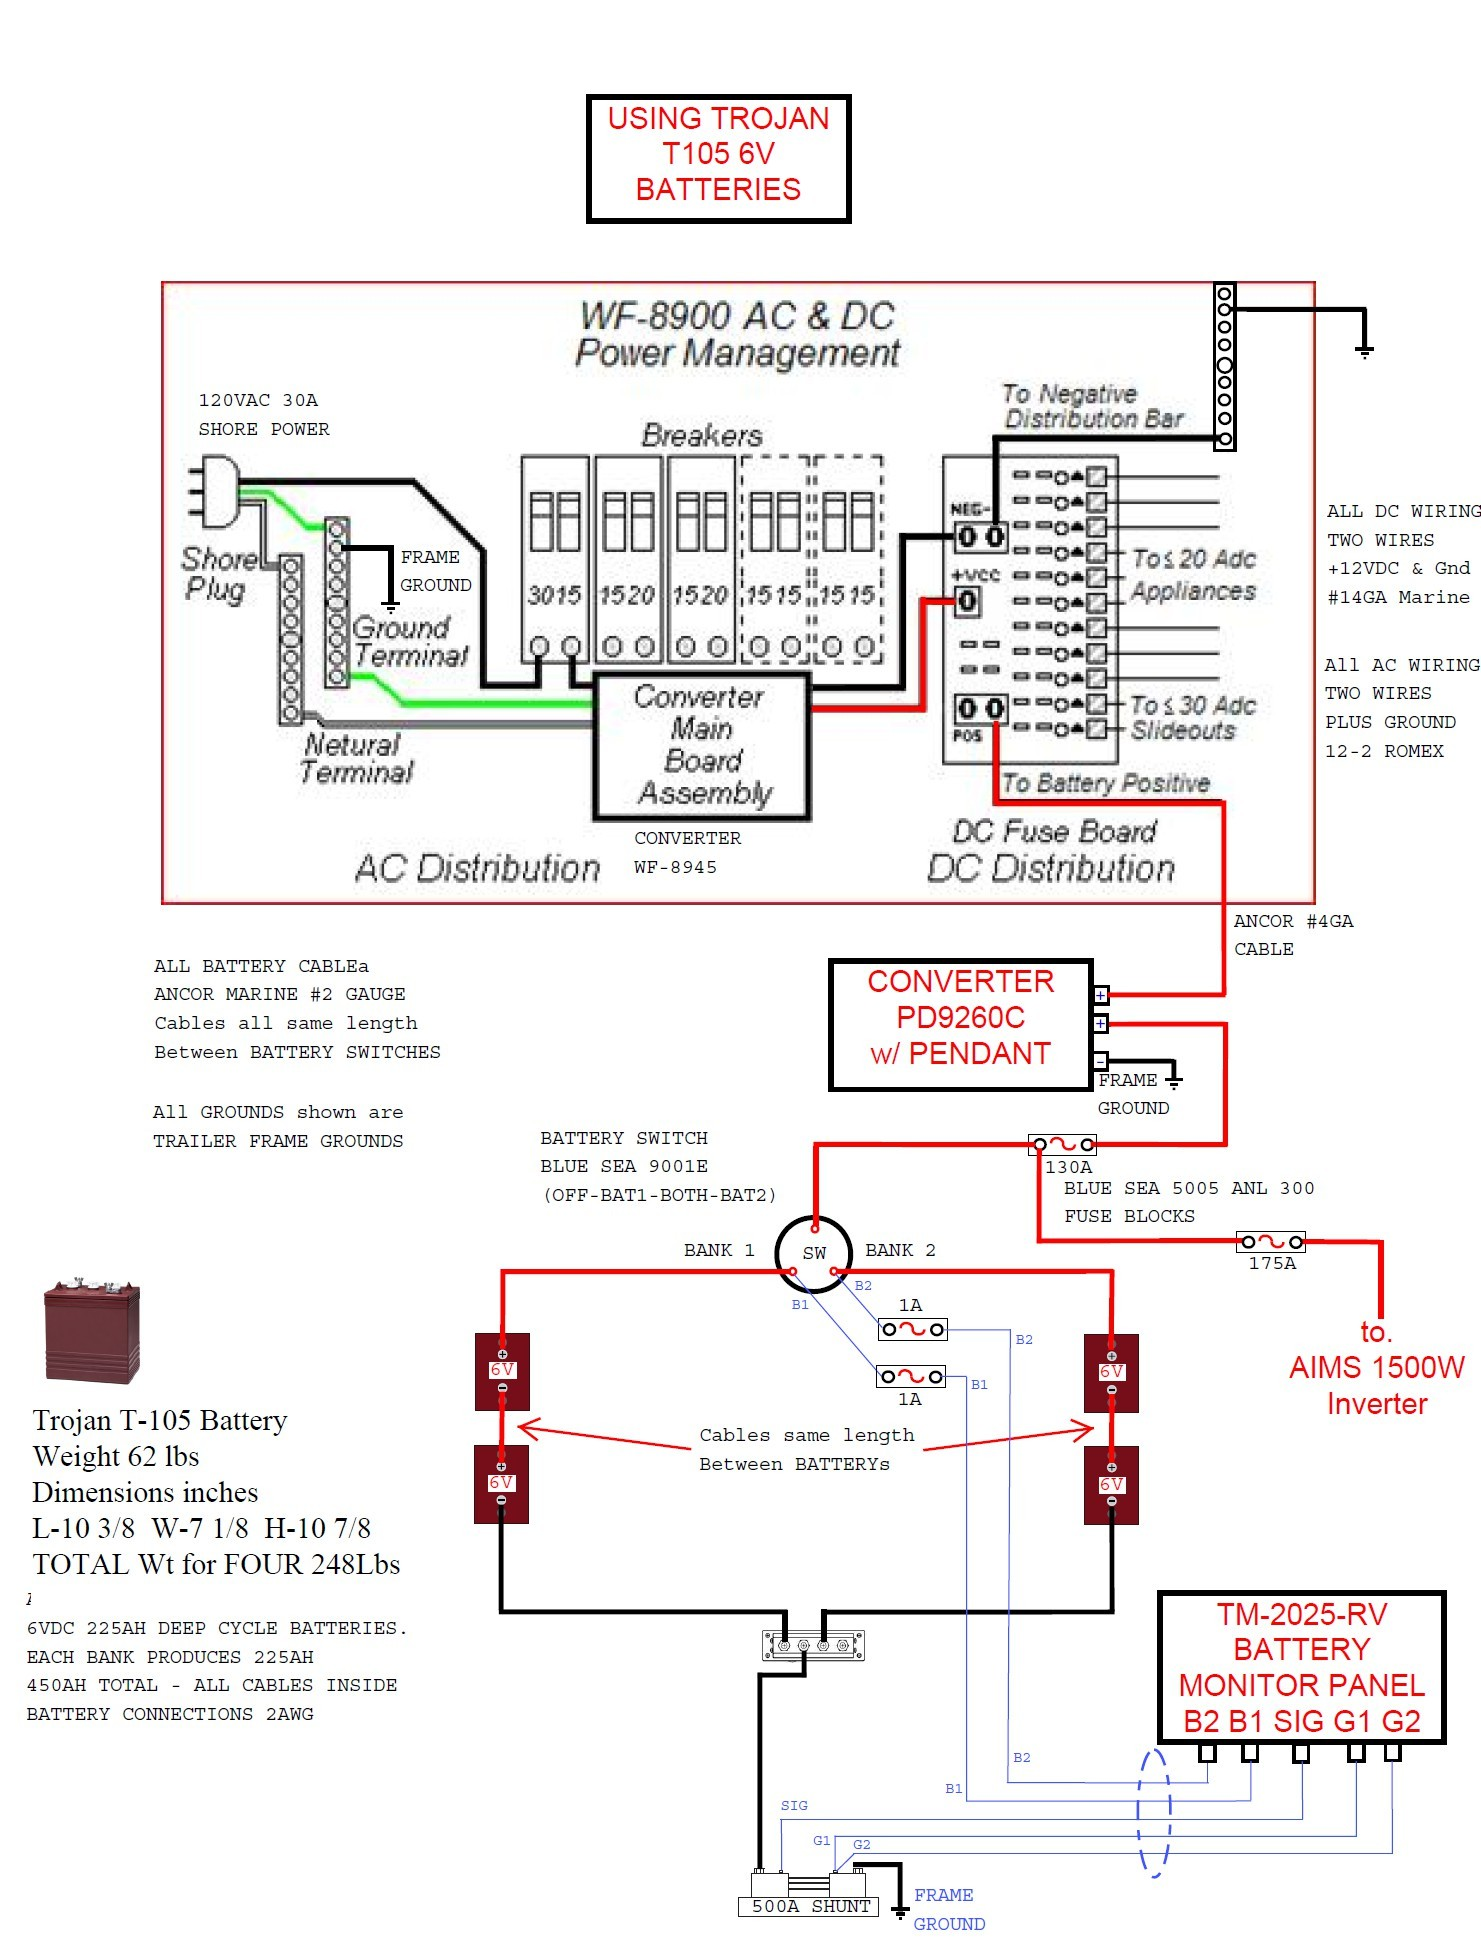 hight resolution of 1999 jayco wiring diagram automotive wiring diagrams jayco camper trailer wiring jayco camper wiring